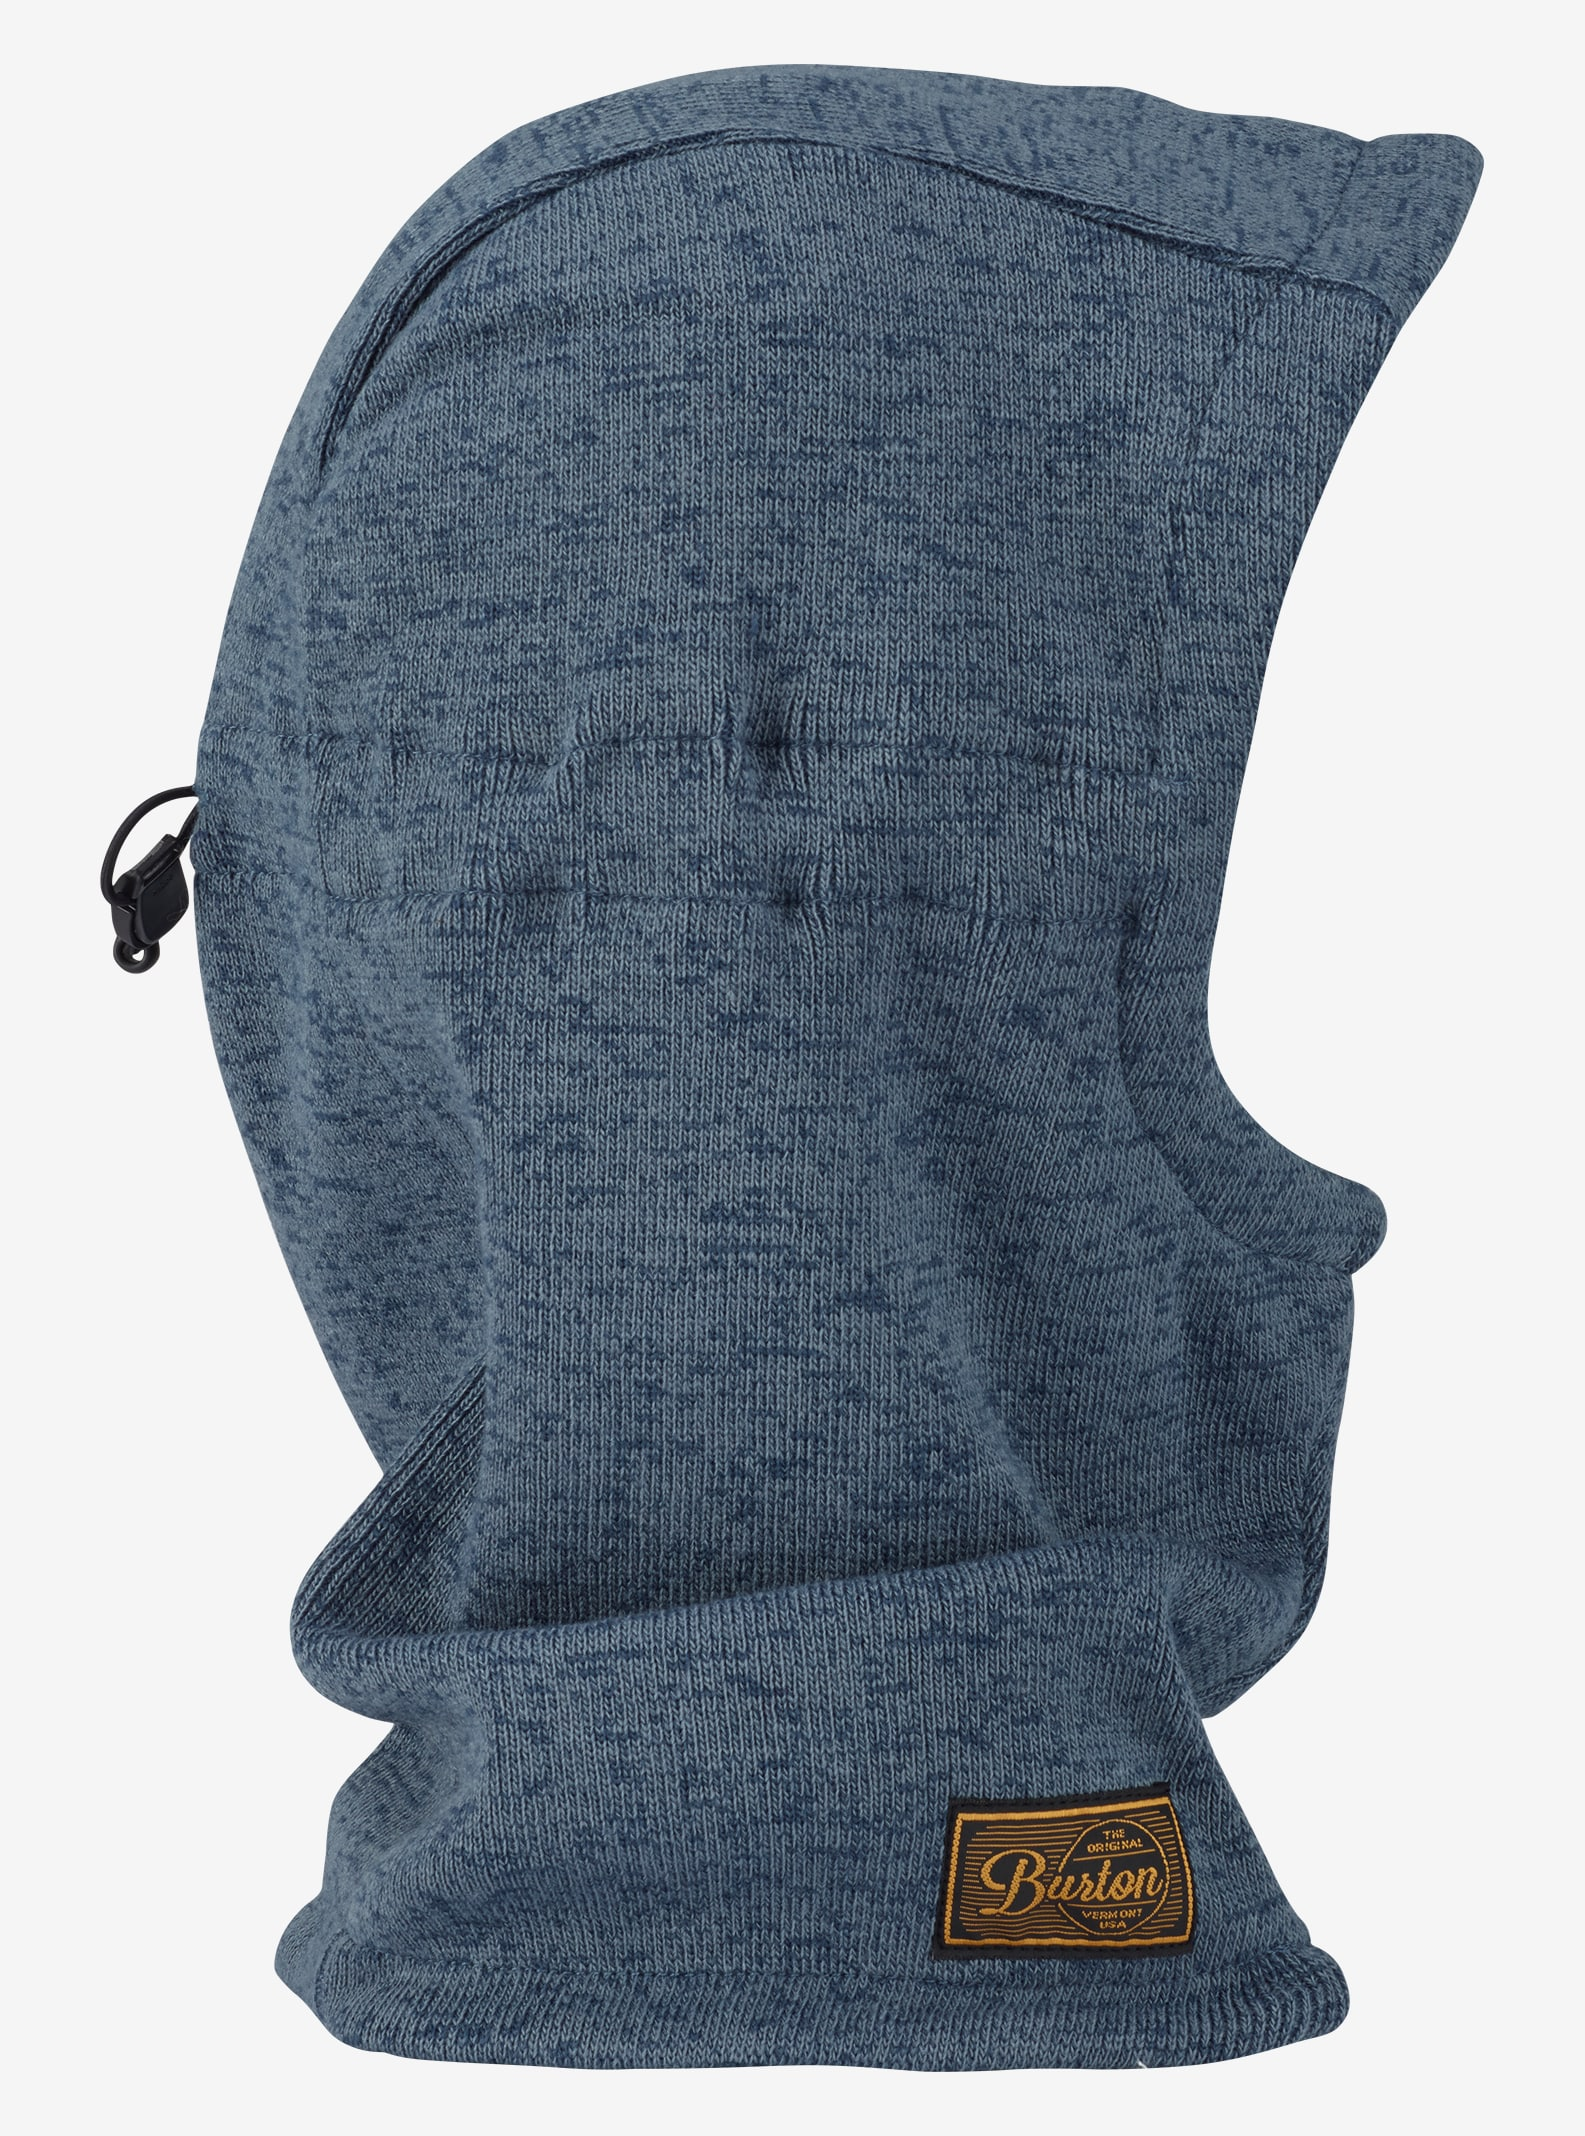 Men's Burton Hampshire Hood shown in Mood Indigo / LA Sky Marl